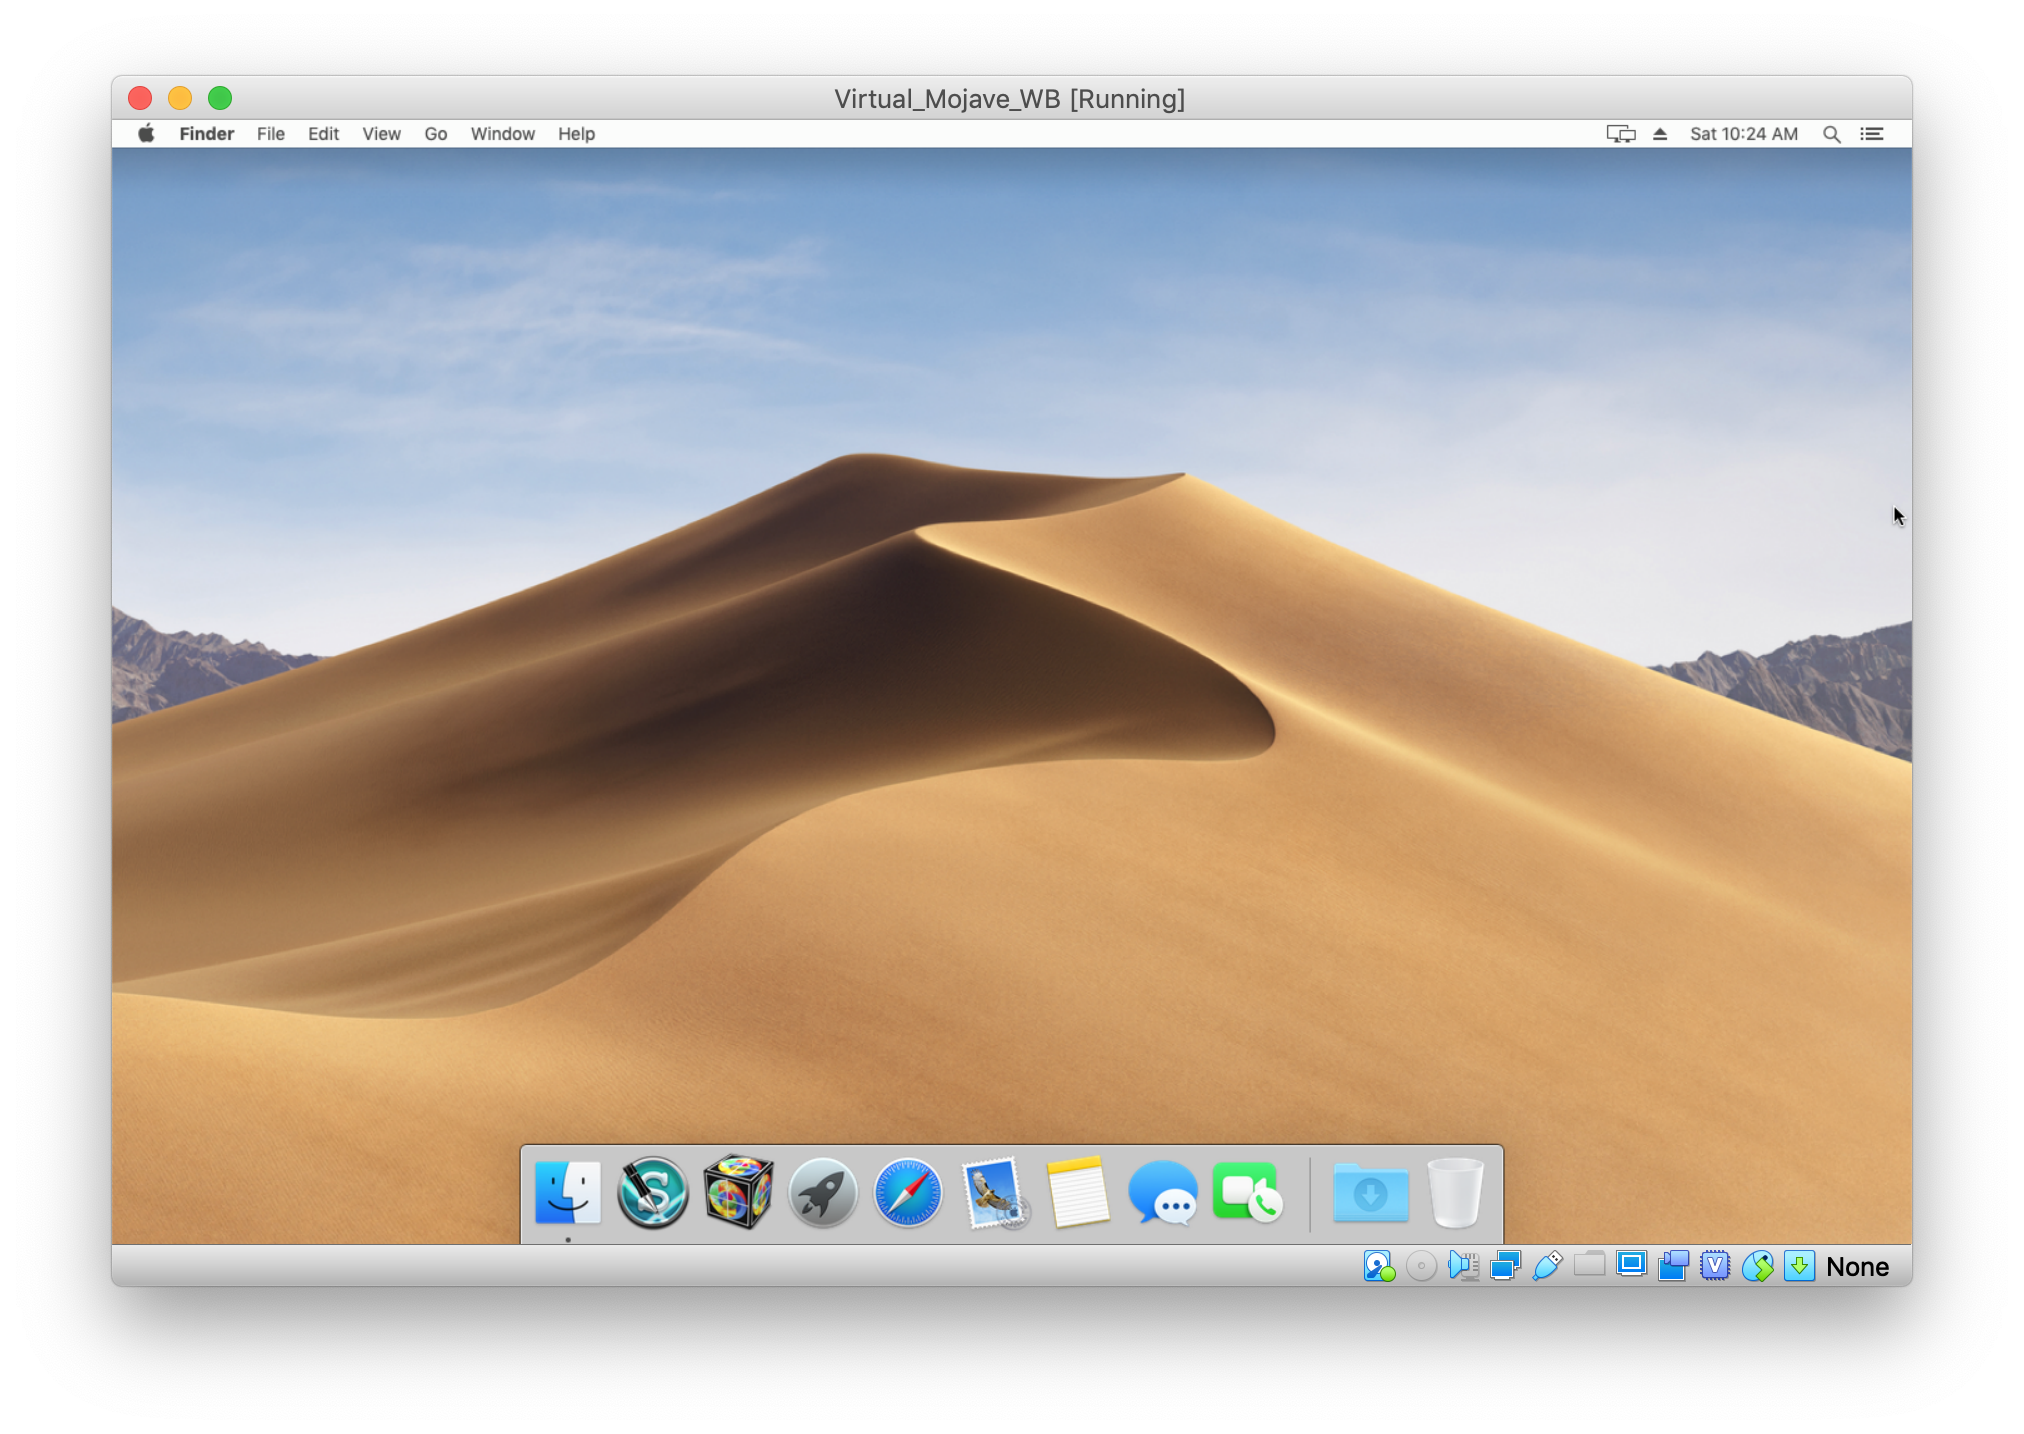 Virtual_Mojave_running_desktop.png